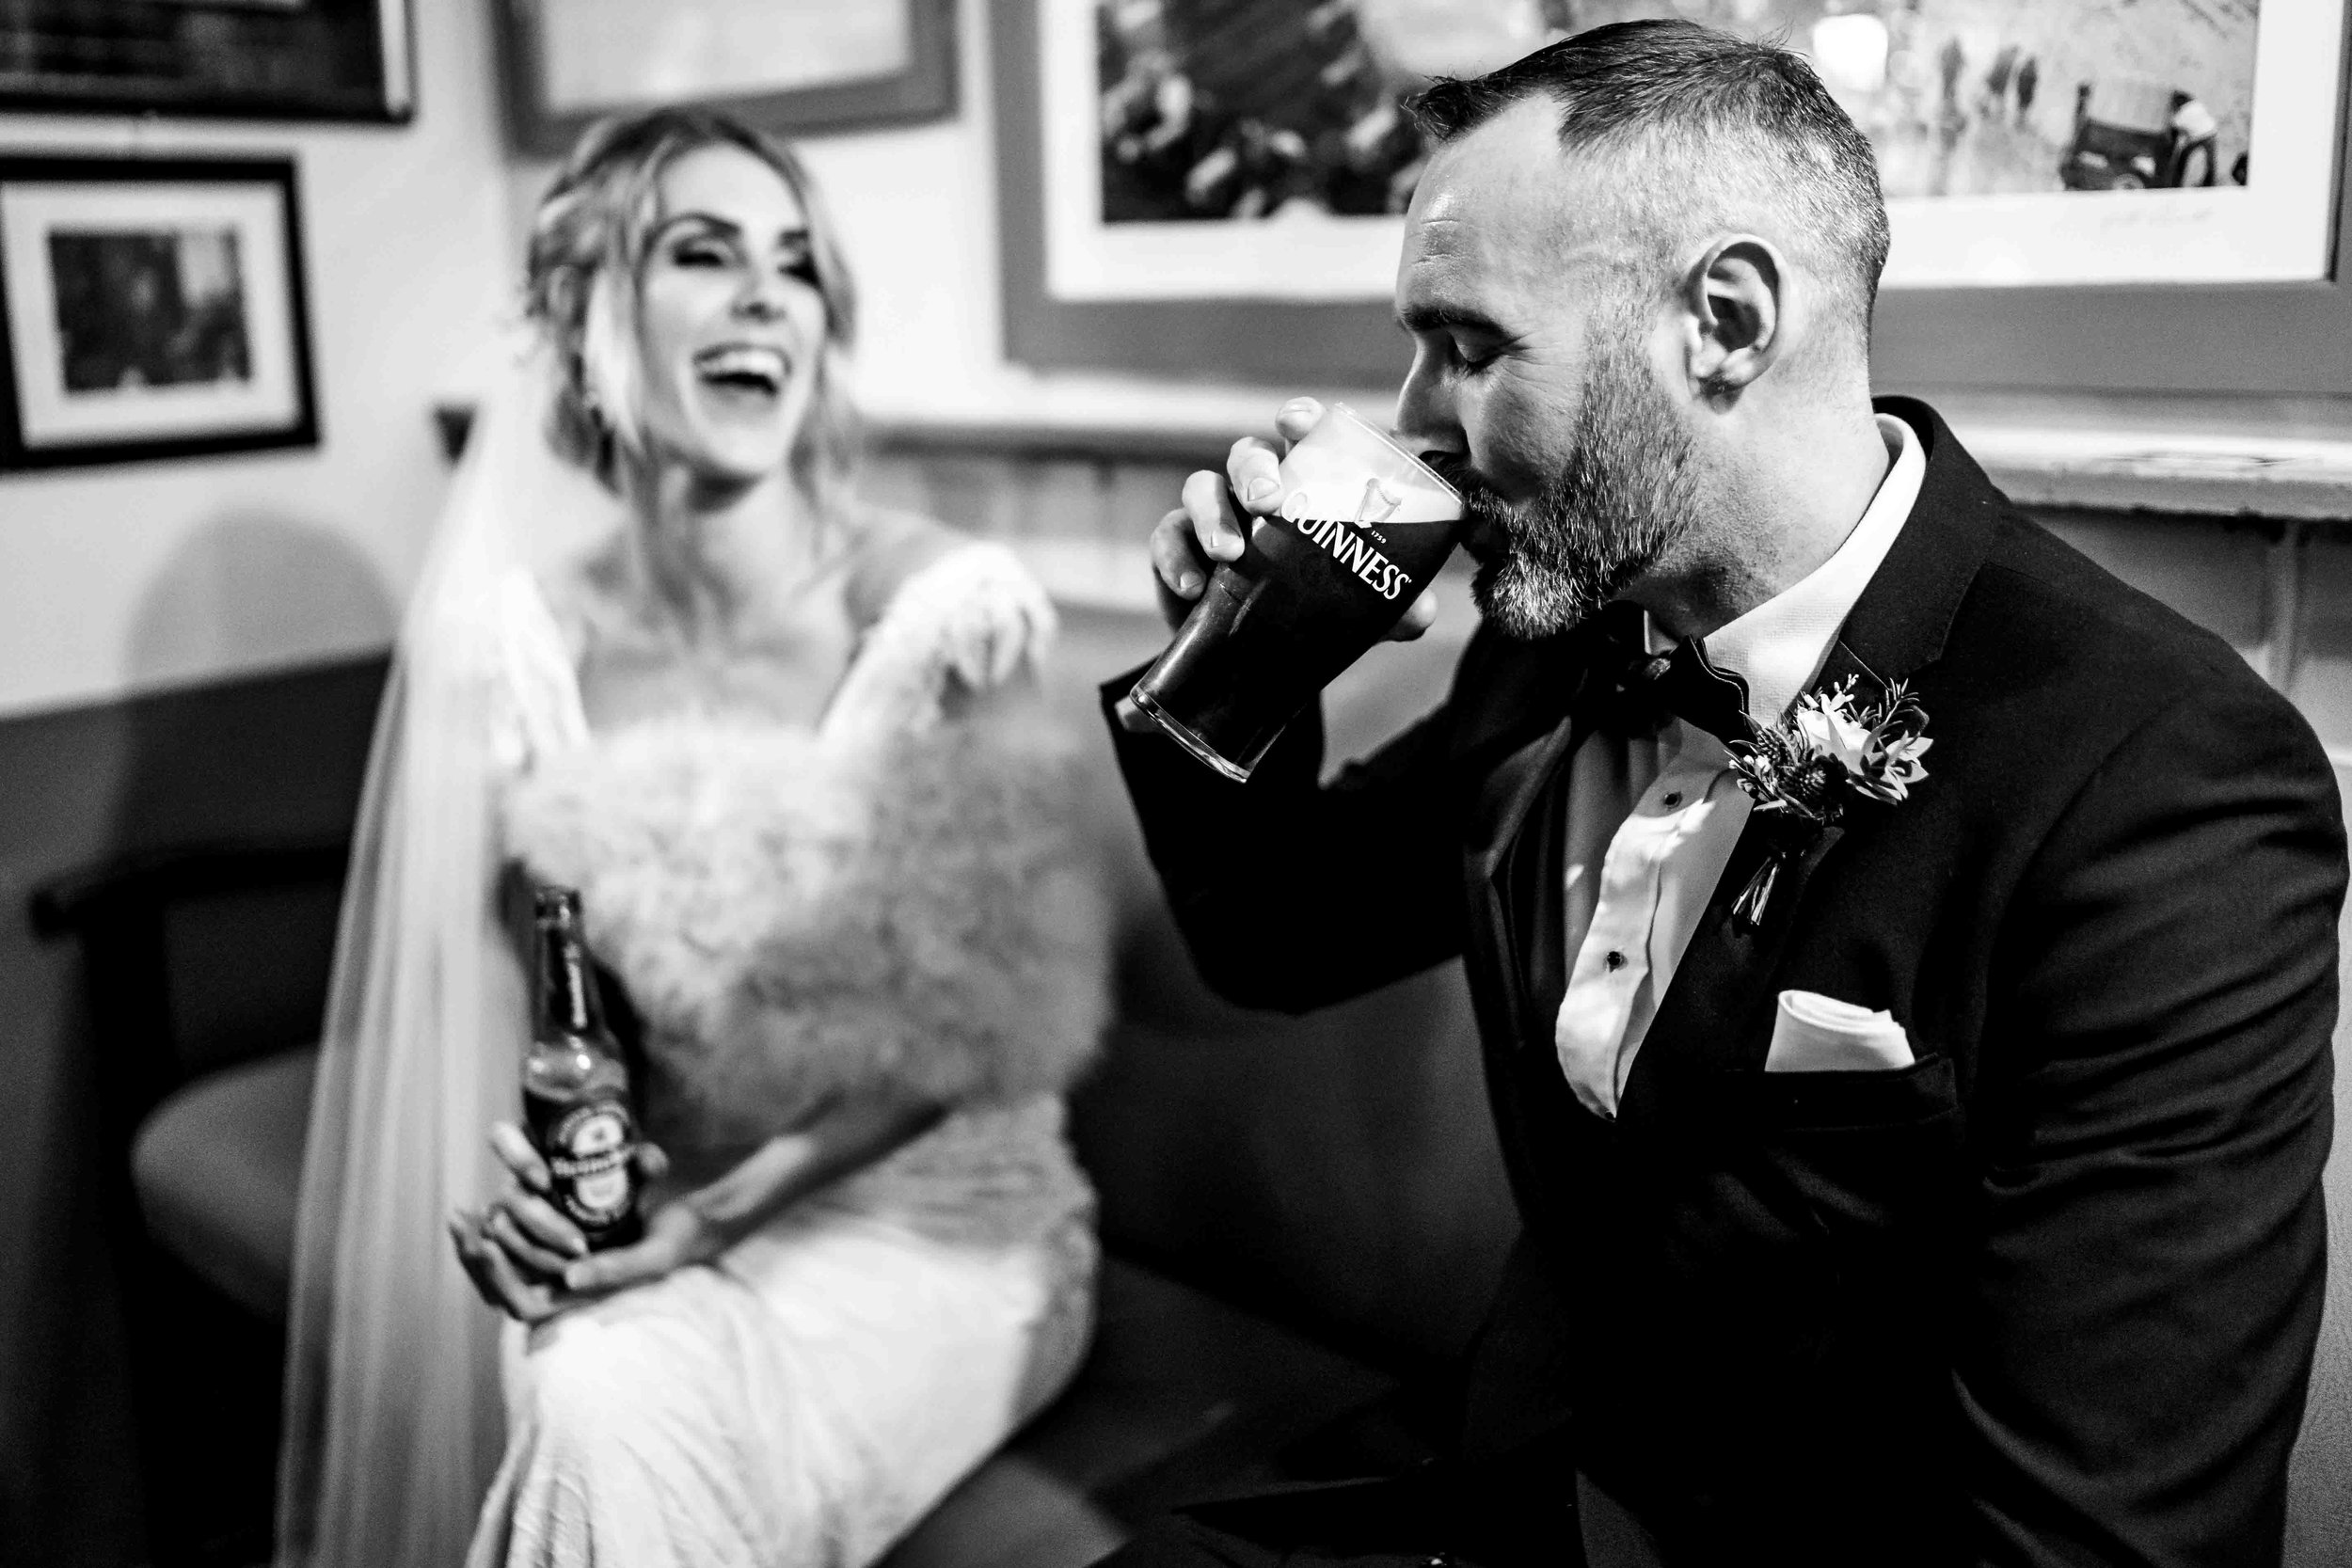 Natural wedding photograph of couple at PJ O Hares Pub Carlingford, Ireland